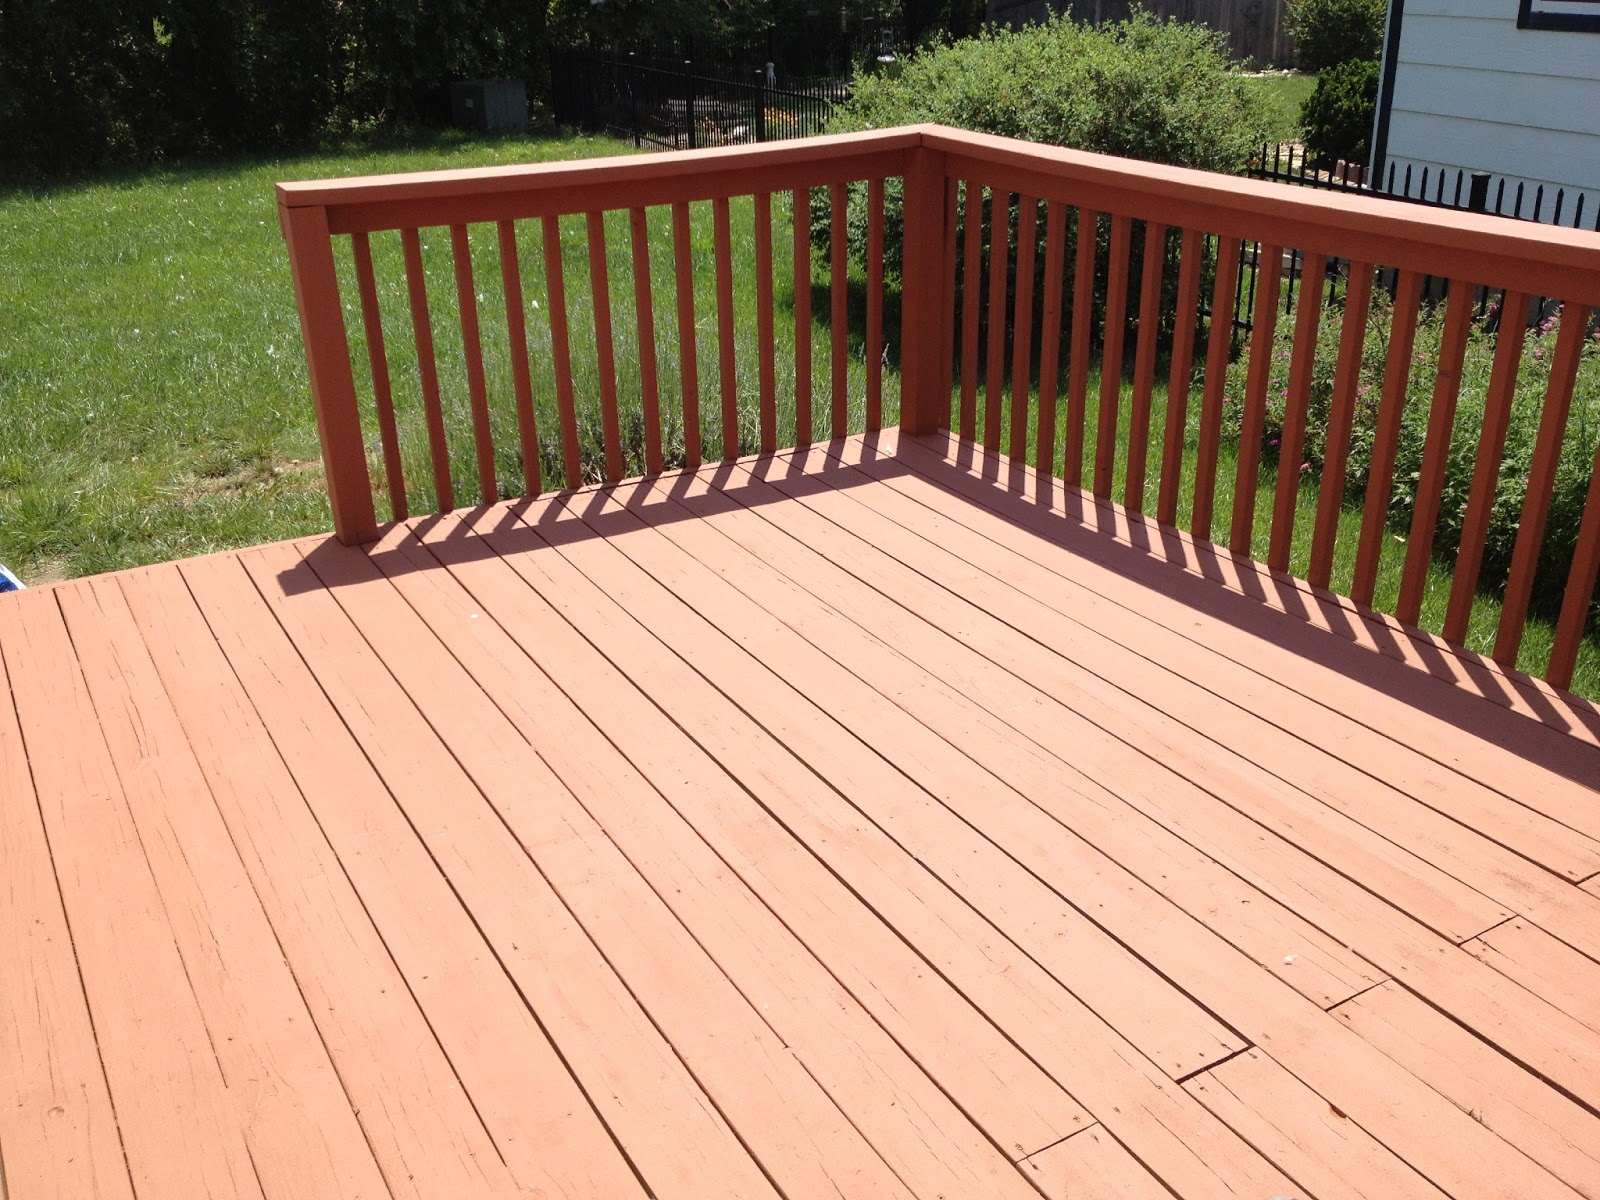 Cost of Behr Deck Over | Behr Deck Over | Behr Deck Over Reviews